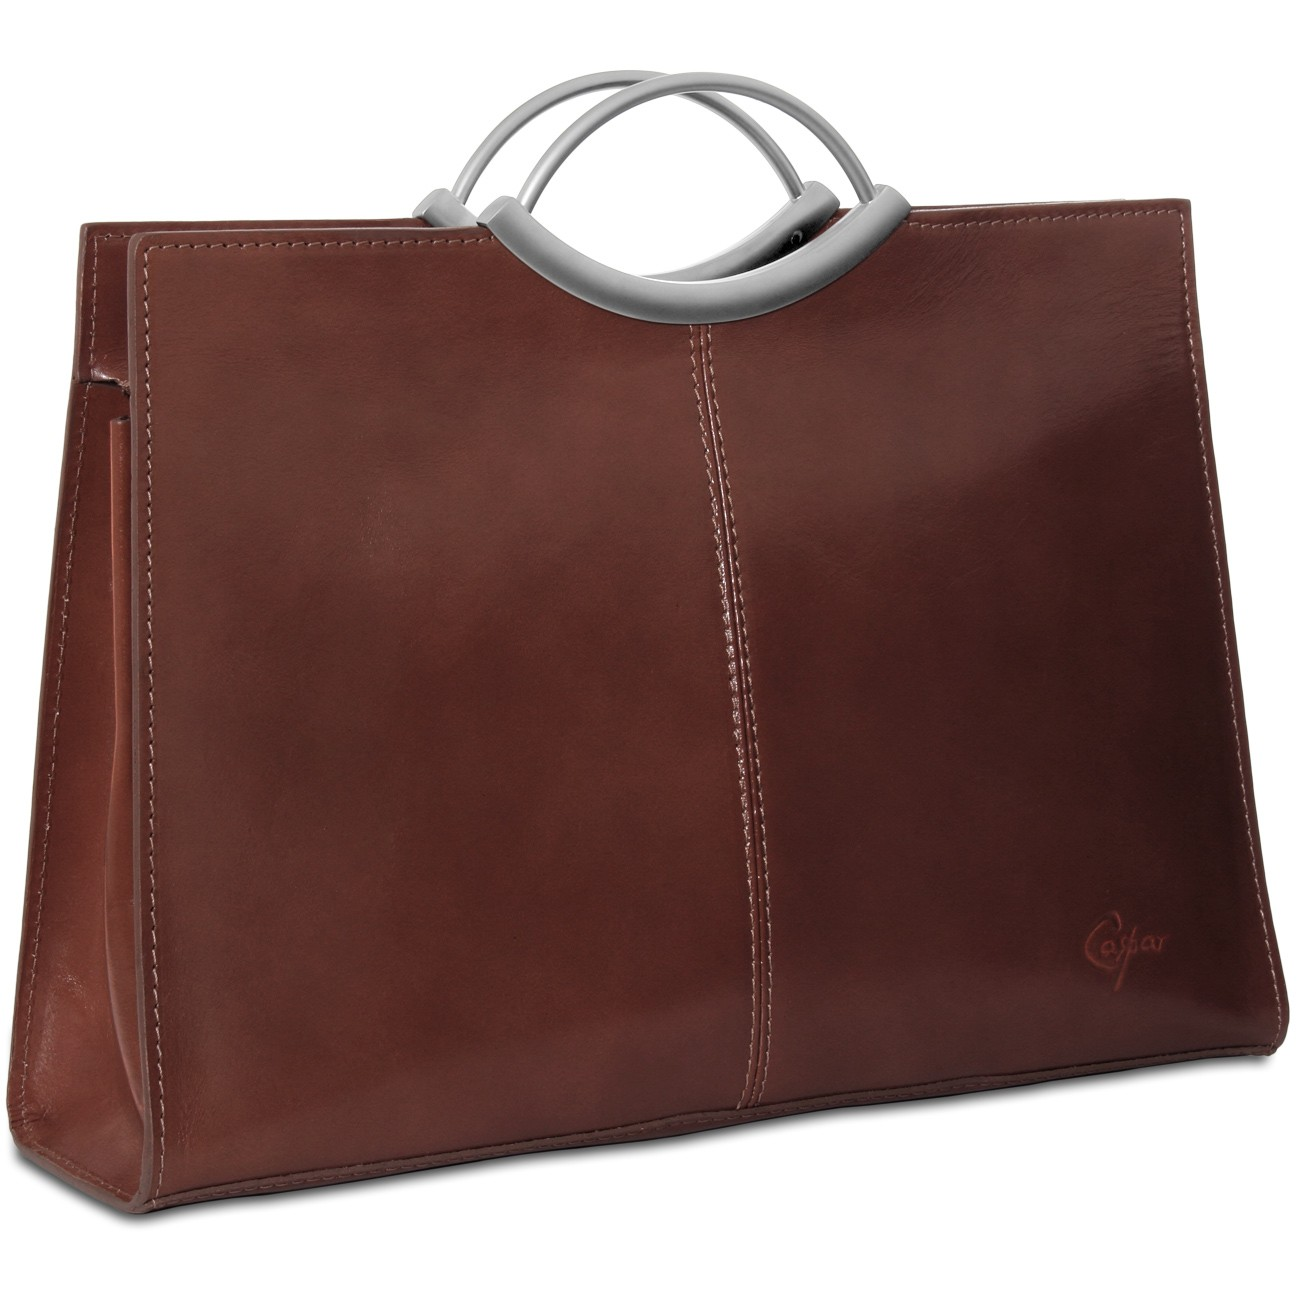 New Contemporary Twist On The Traditional Briefcase, This Designer Bag Comes In Classic Silhouettes But Urbane Finish Slim And Compact, The Briefcase Is Designed For Women To Carry  Soft Calf Leather This Ladies Business Leather Bag Boasts Of